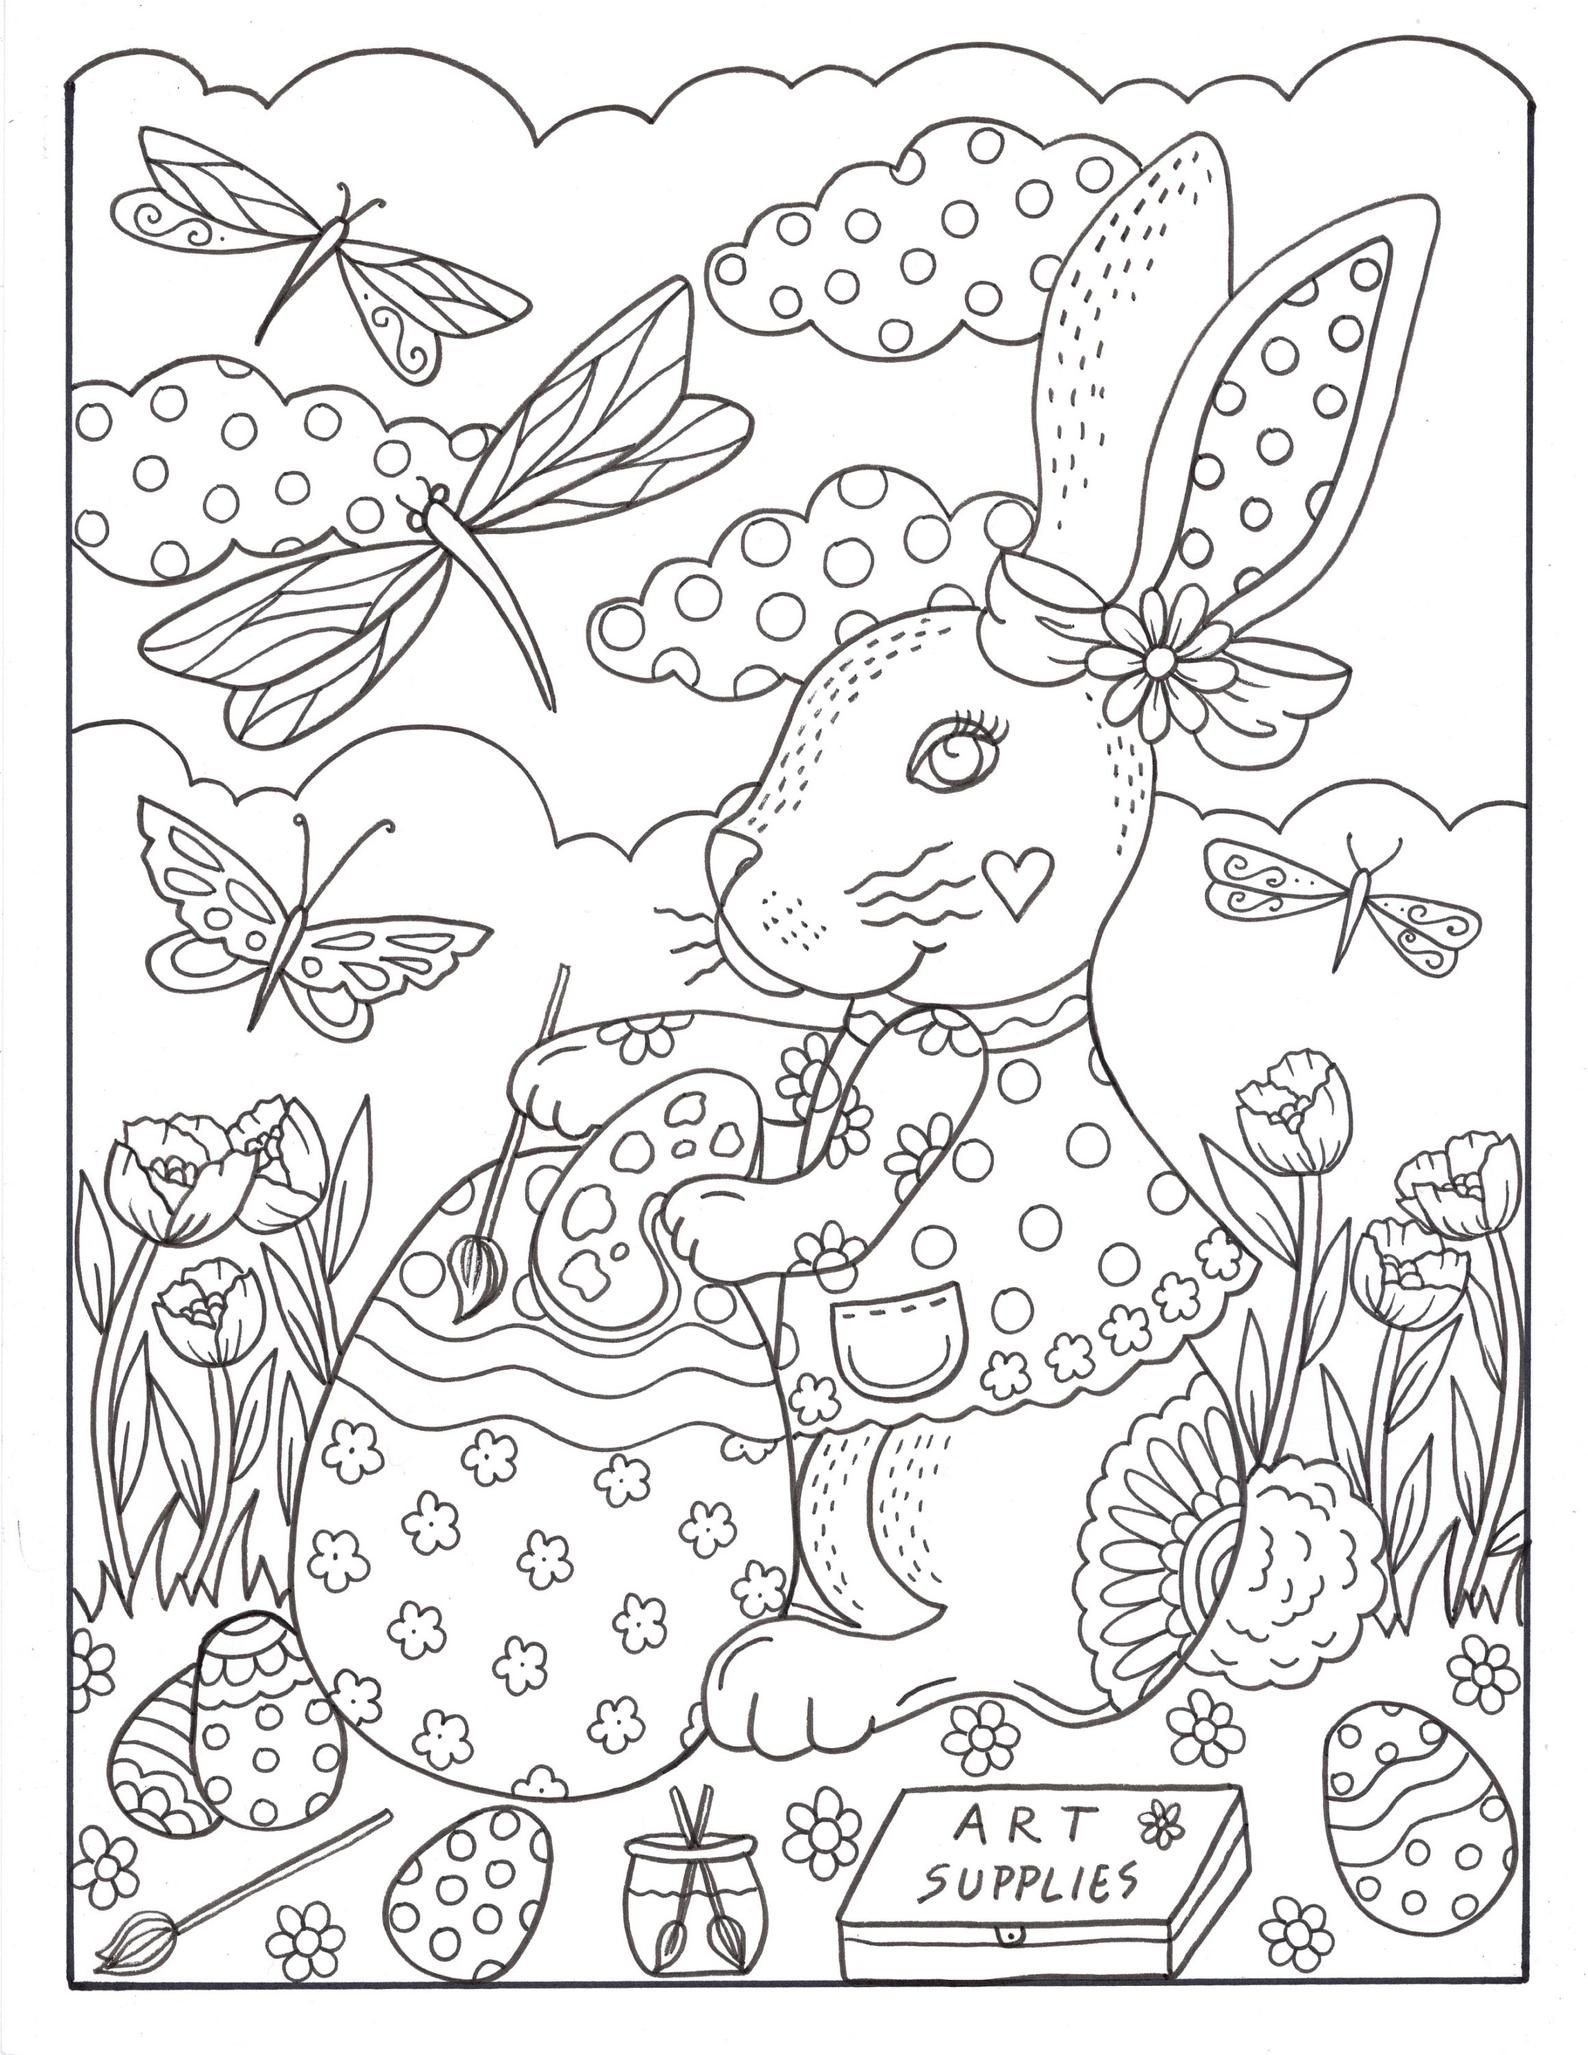 Bunny Love 10 Digital Coloring Pages Downloads Digi Stamps Etsy Bunny Coloring Pages Easter Coloring Pages Printable Easter Colouring